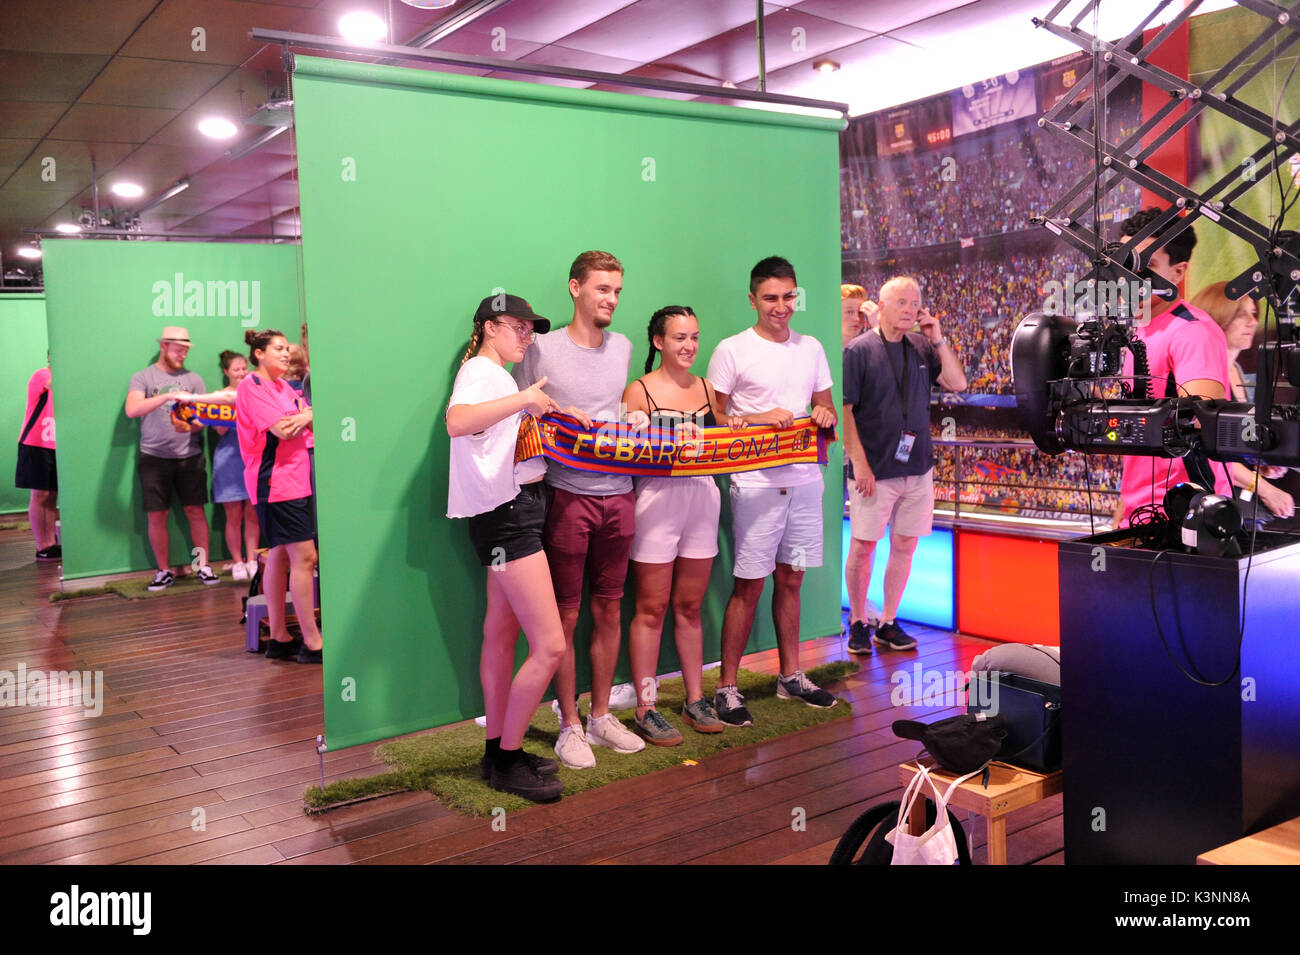 Photoshoot at the FC Barcelona Museum and Nou camp stadium tour. - Stock Image